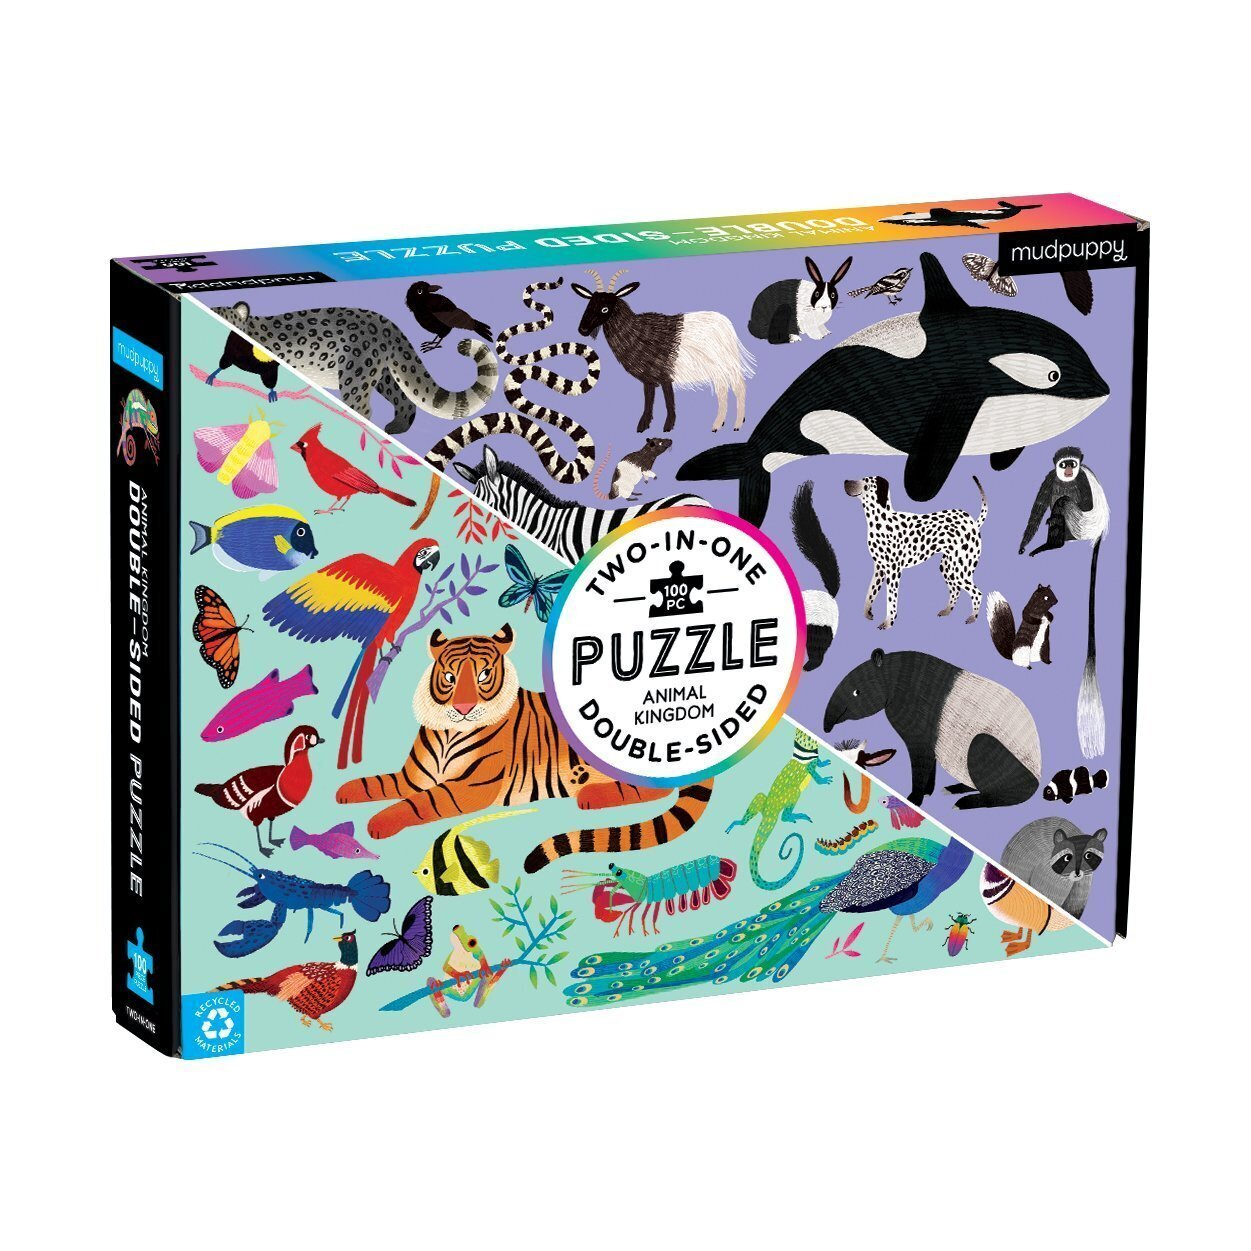 Mudpuppy 100 Piece Puzzle double sided Animal Kingdom